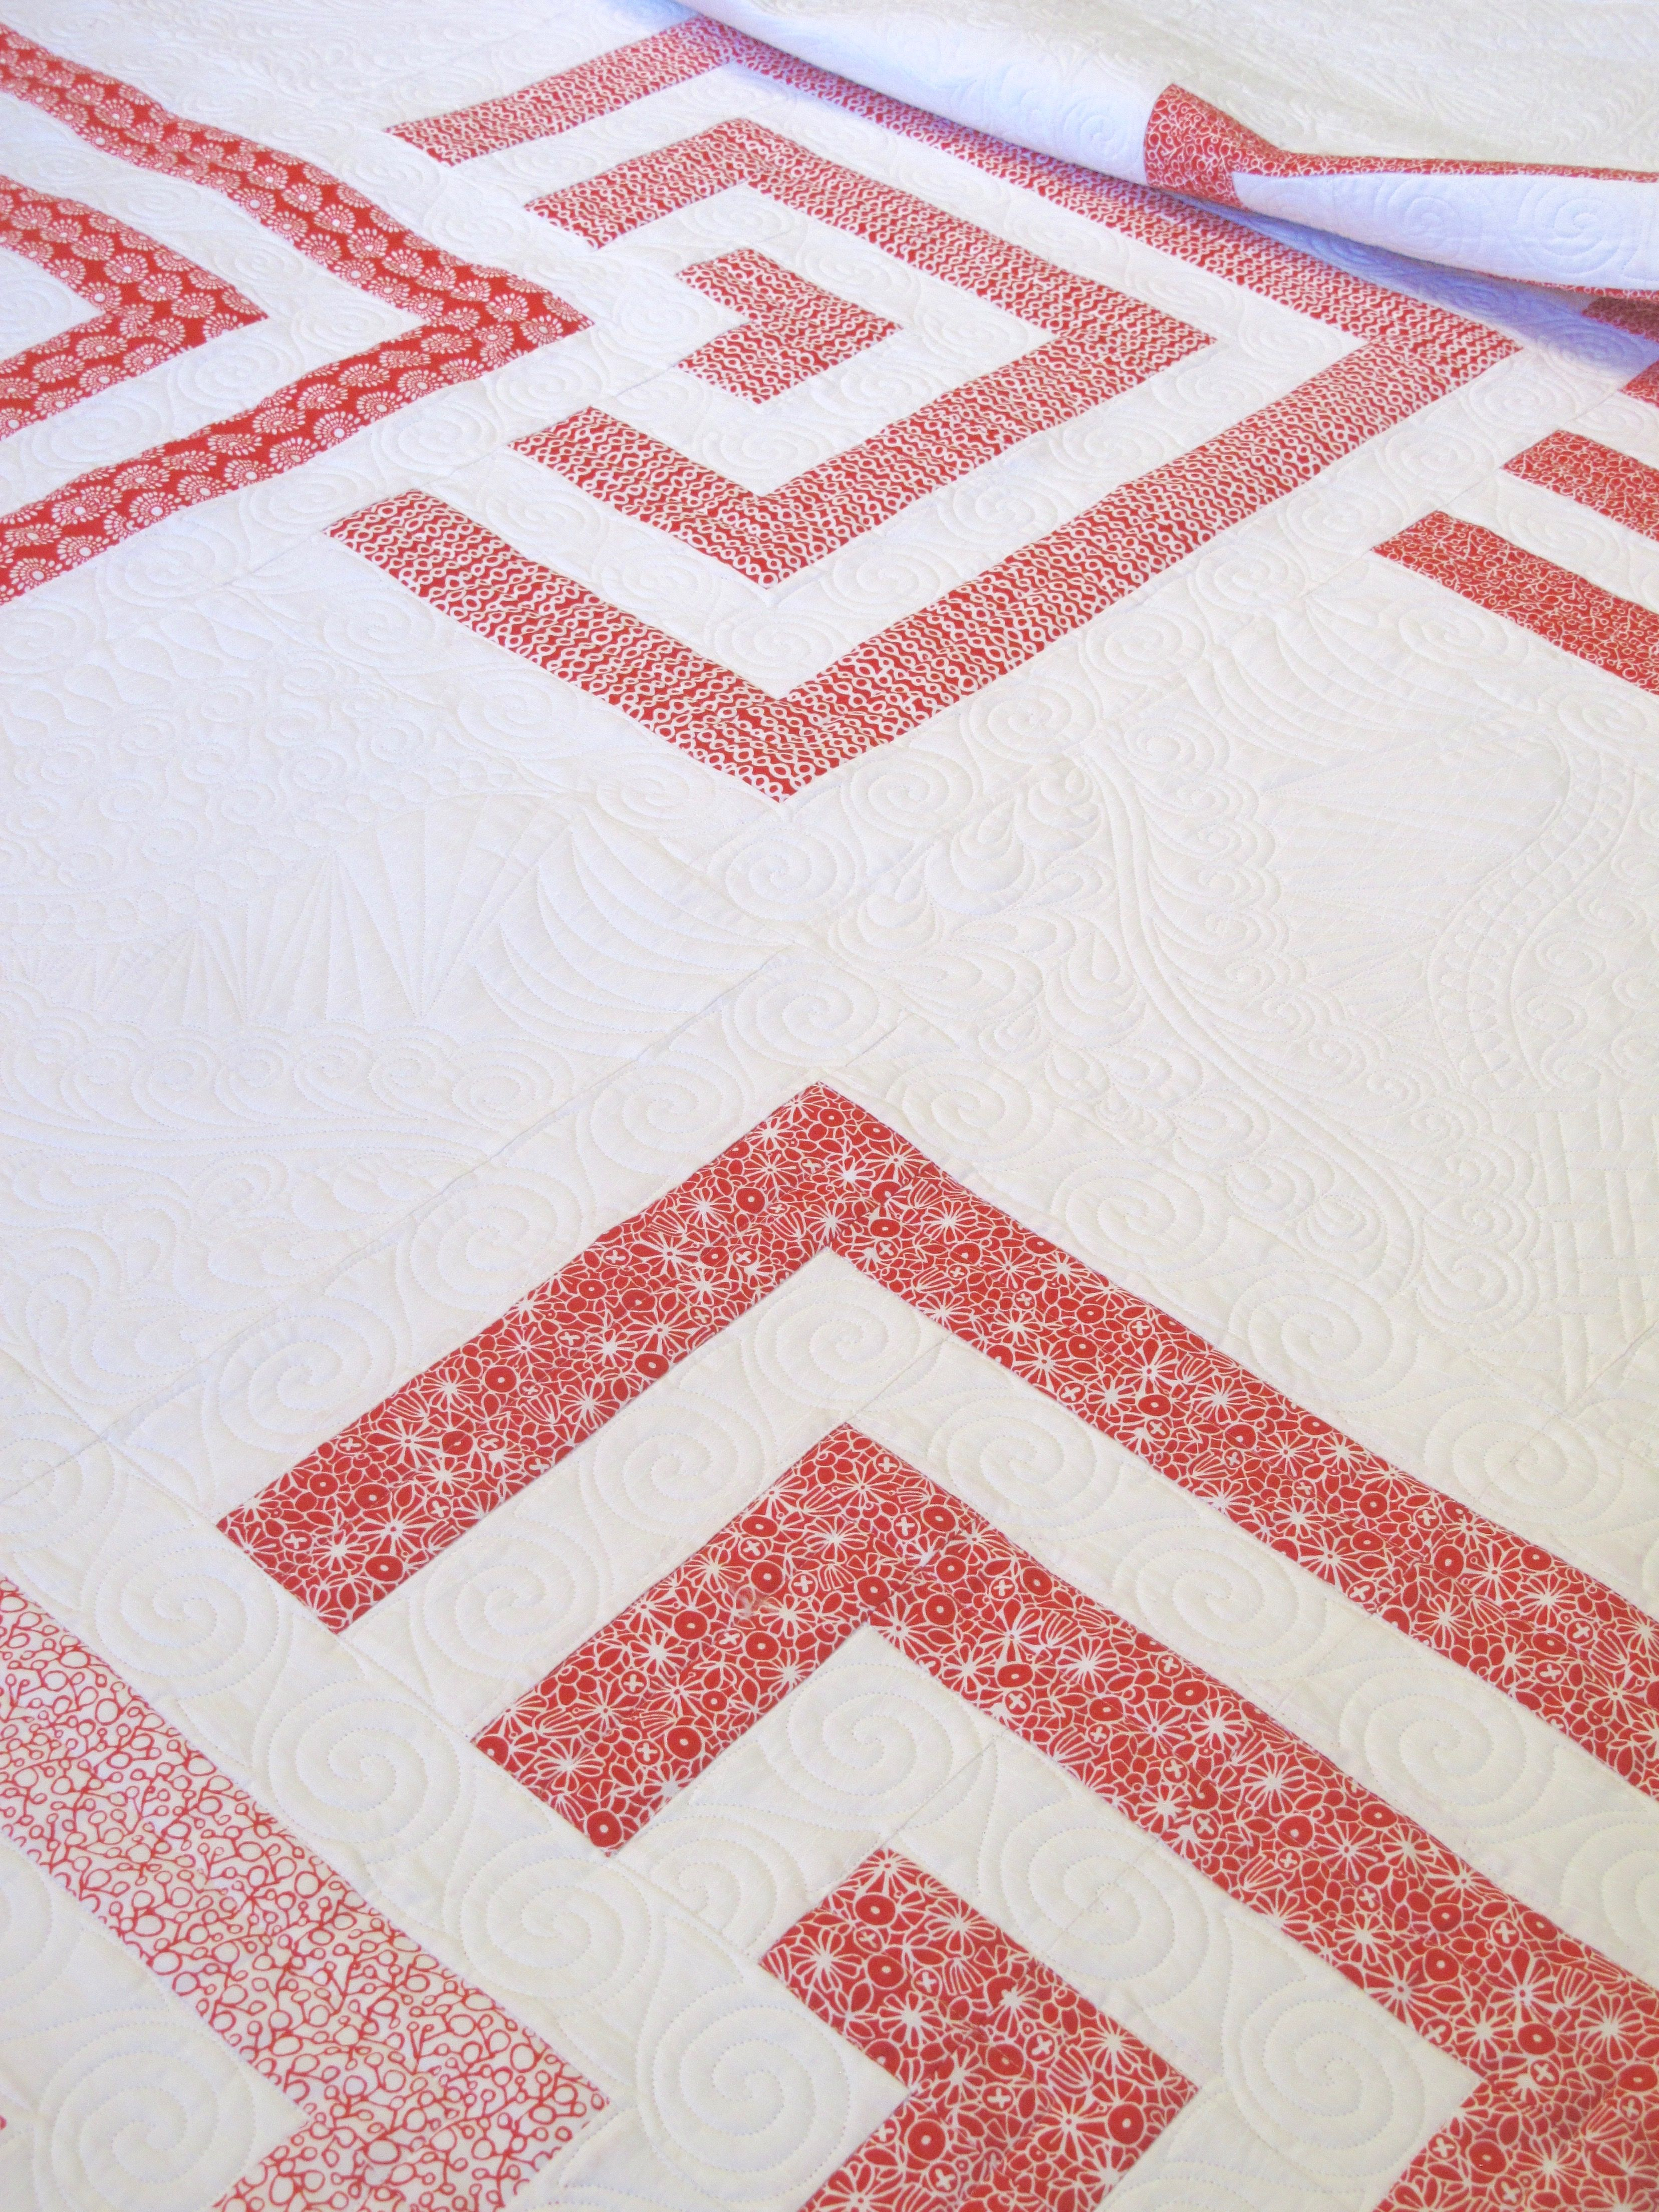 Our new Red Urban Scandinavian Quilt Kit. Our complete kit ... : complete quilt kits - Adamdwight.com